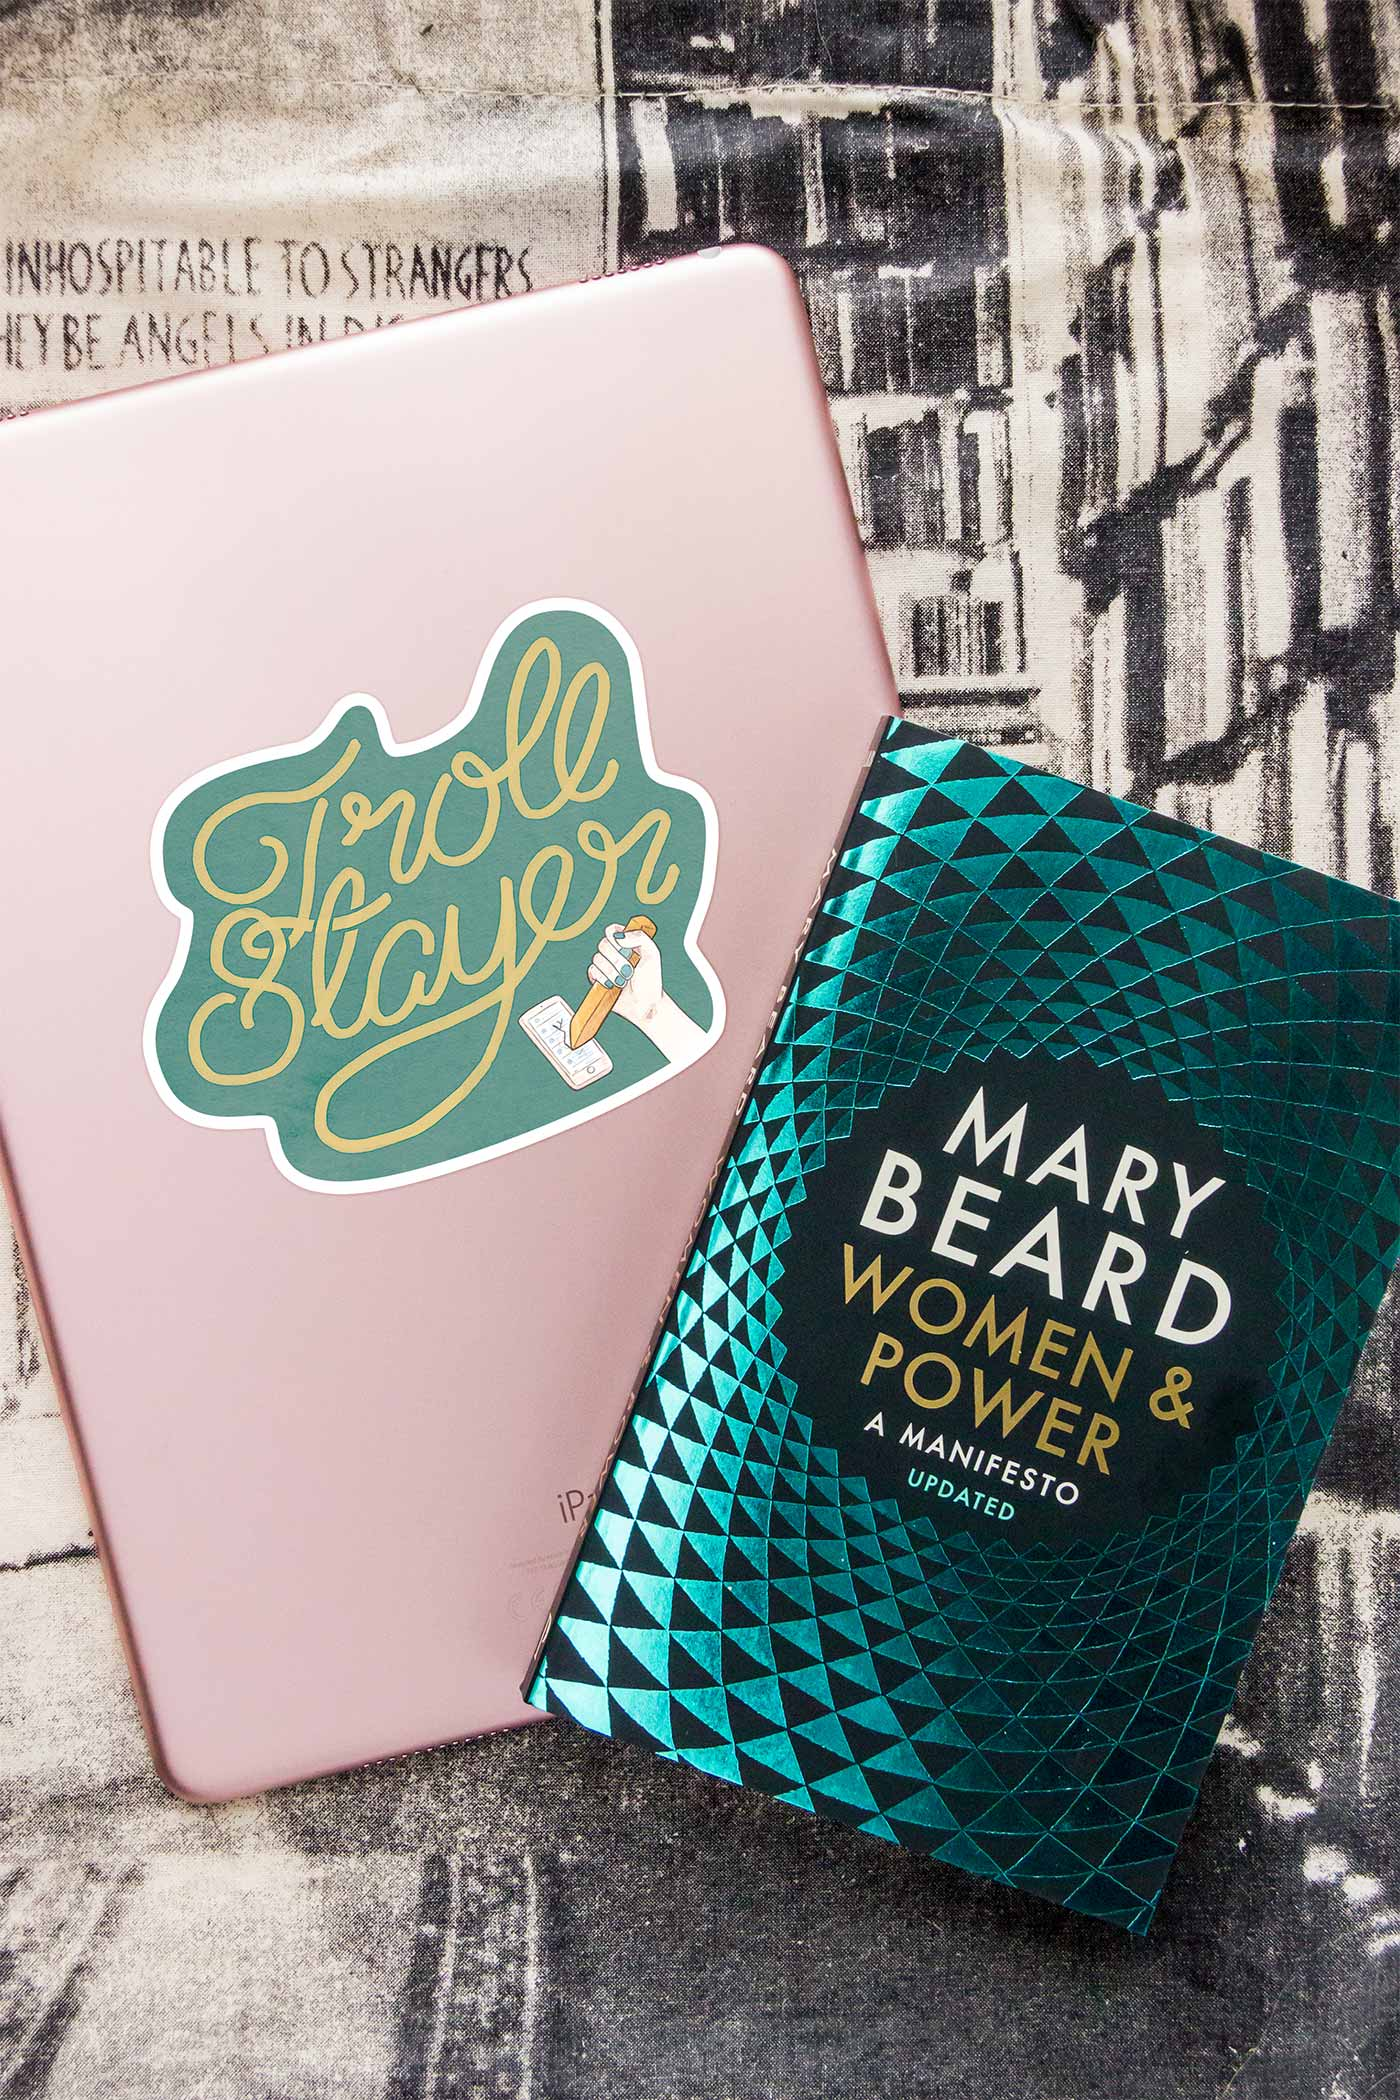 Troll Slayer / Mary Beard Power & Women Sticker